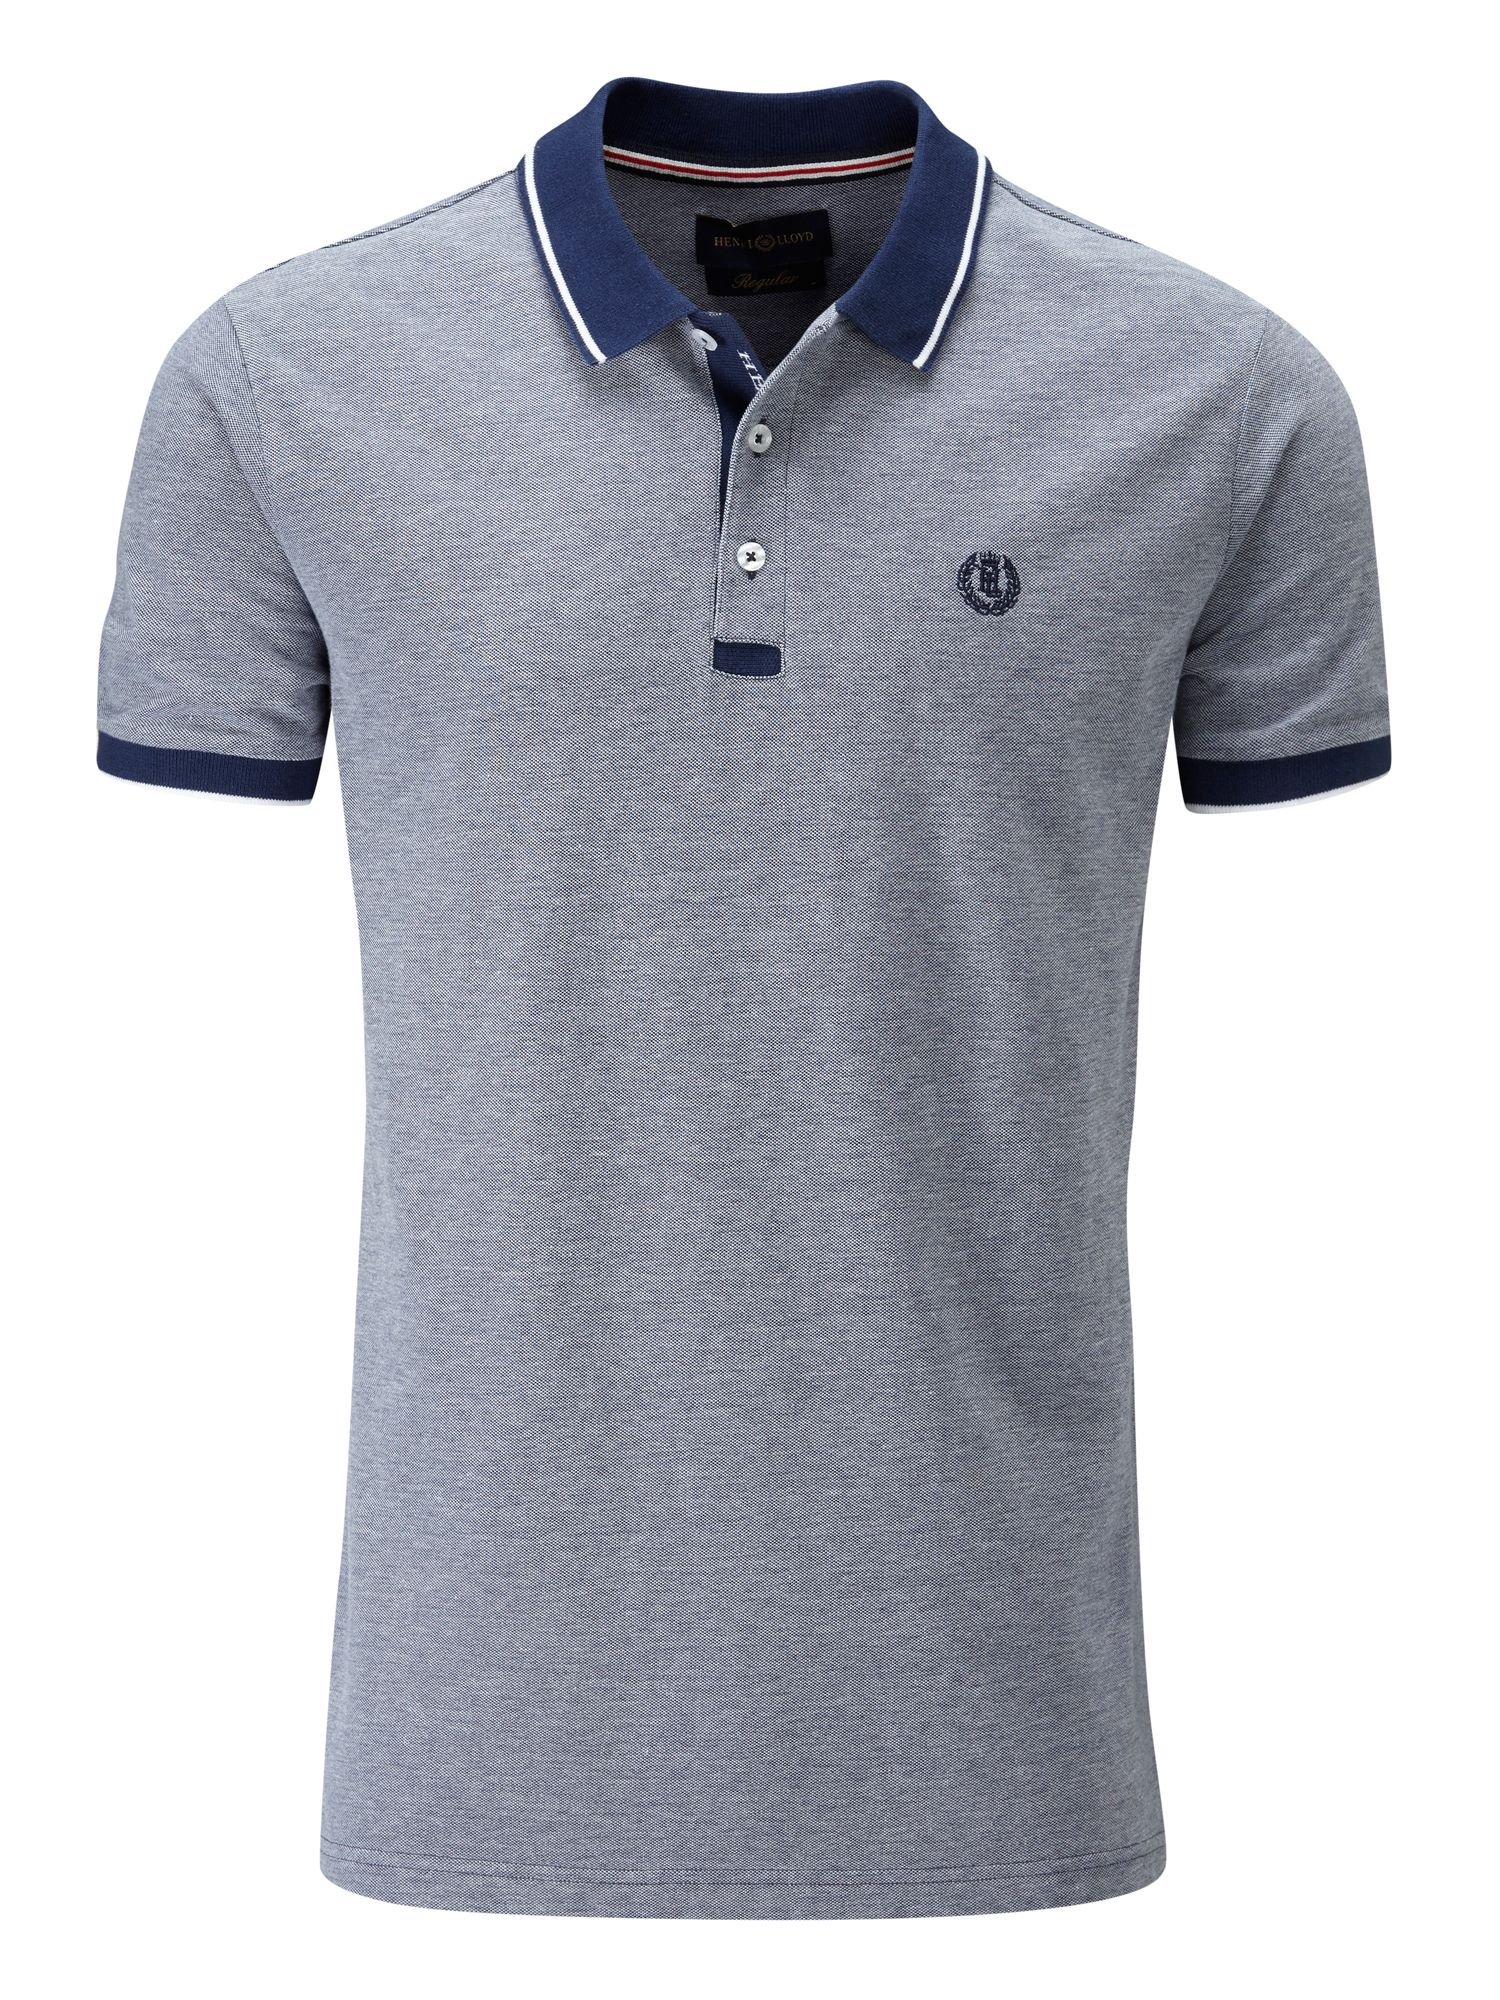 Men's Henri Lloyd Kemsing Regular Polo, Mid Blue